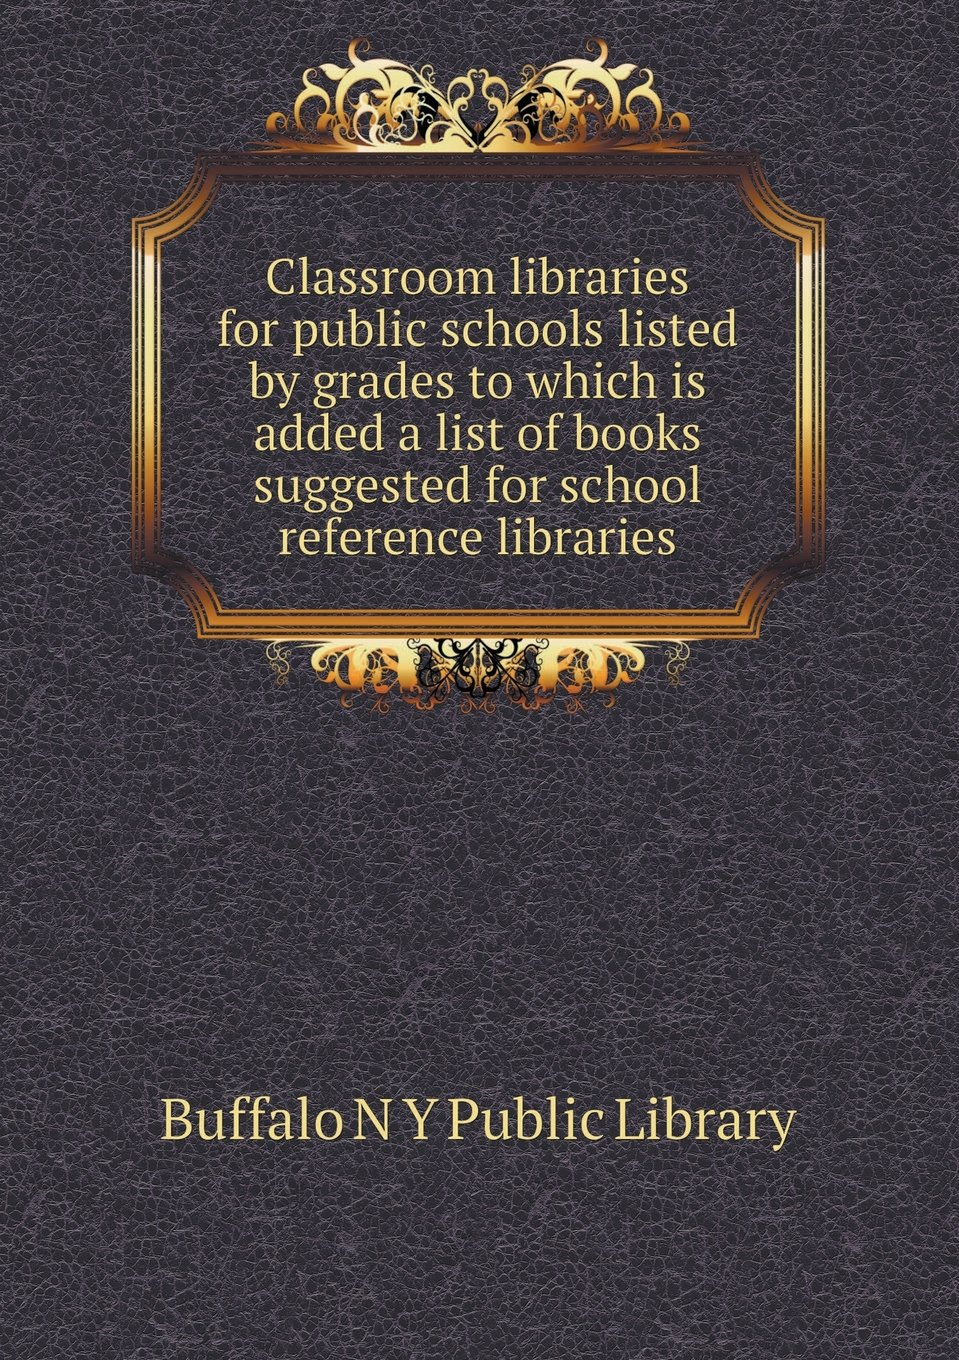 Download Classroom libraries for public schools listed by grades to which is added a list of books suggested for school reference libraries ebook